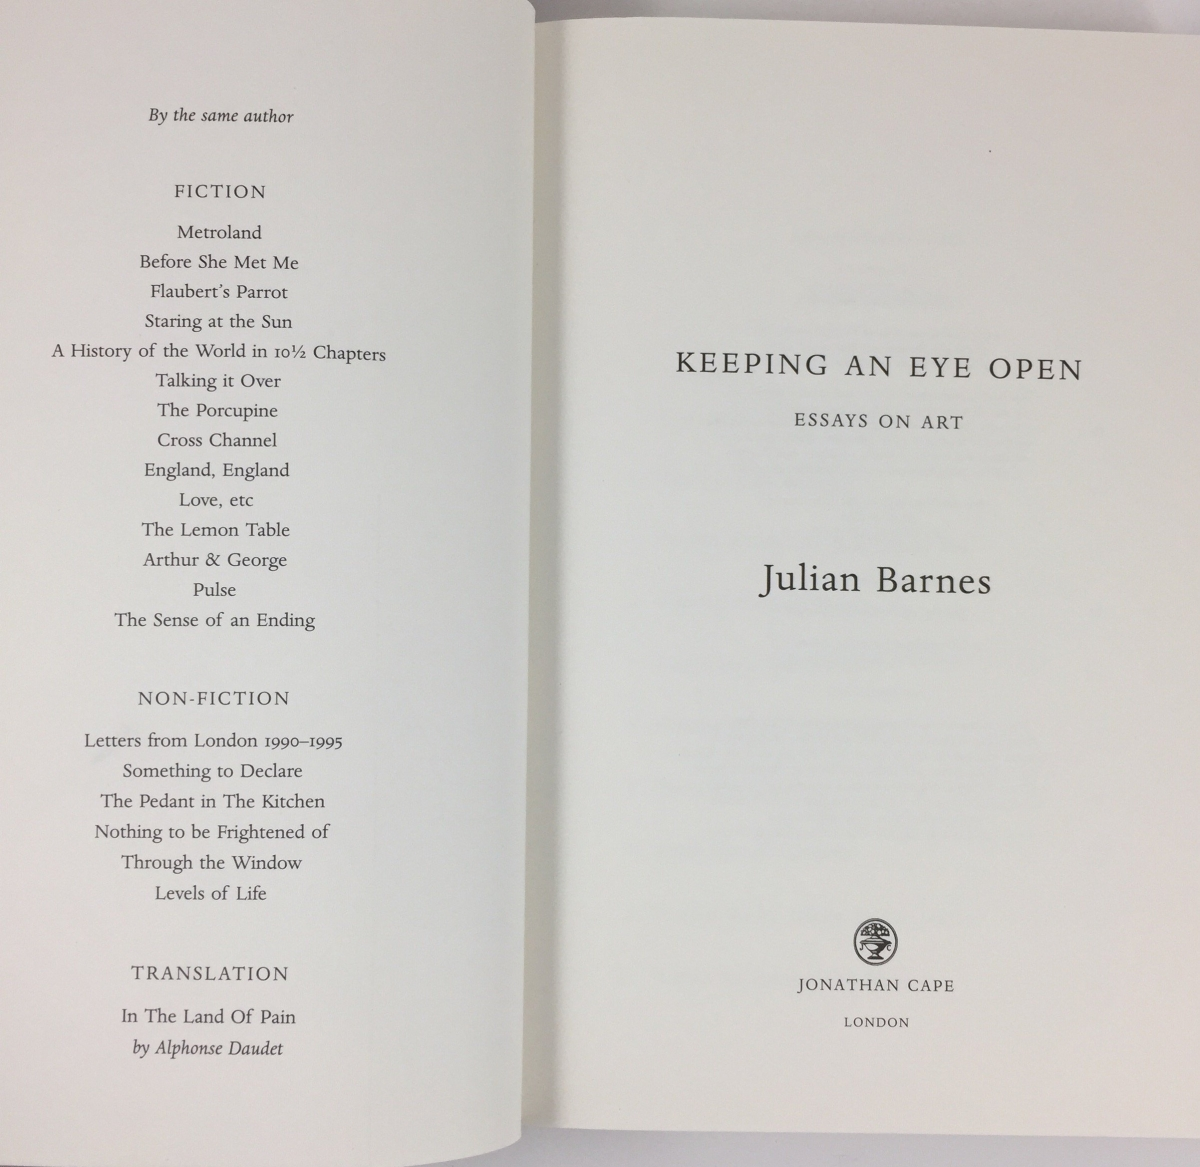 howard hodgkin julian barnes bibliography notes on this edition jonathan cape published julian barnes s collection of art essays keeping an eye open in 2015 on the acknowledgements page